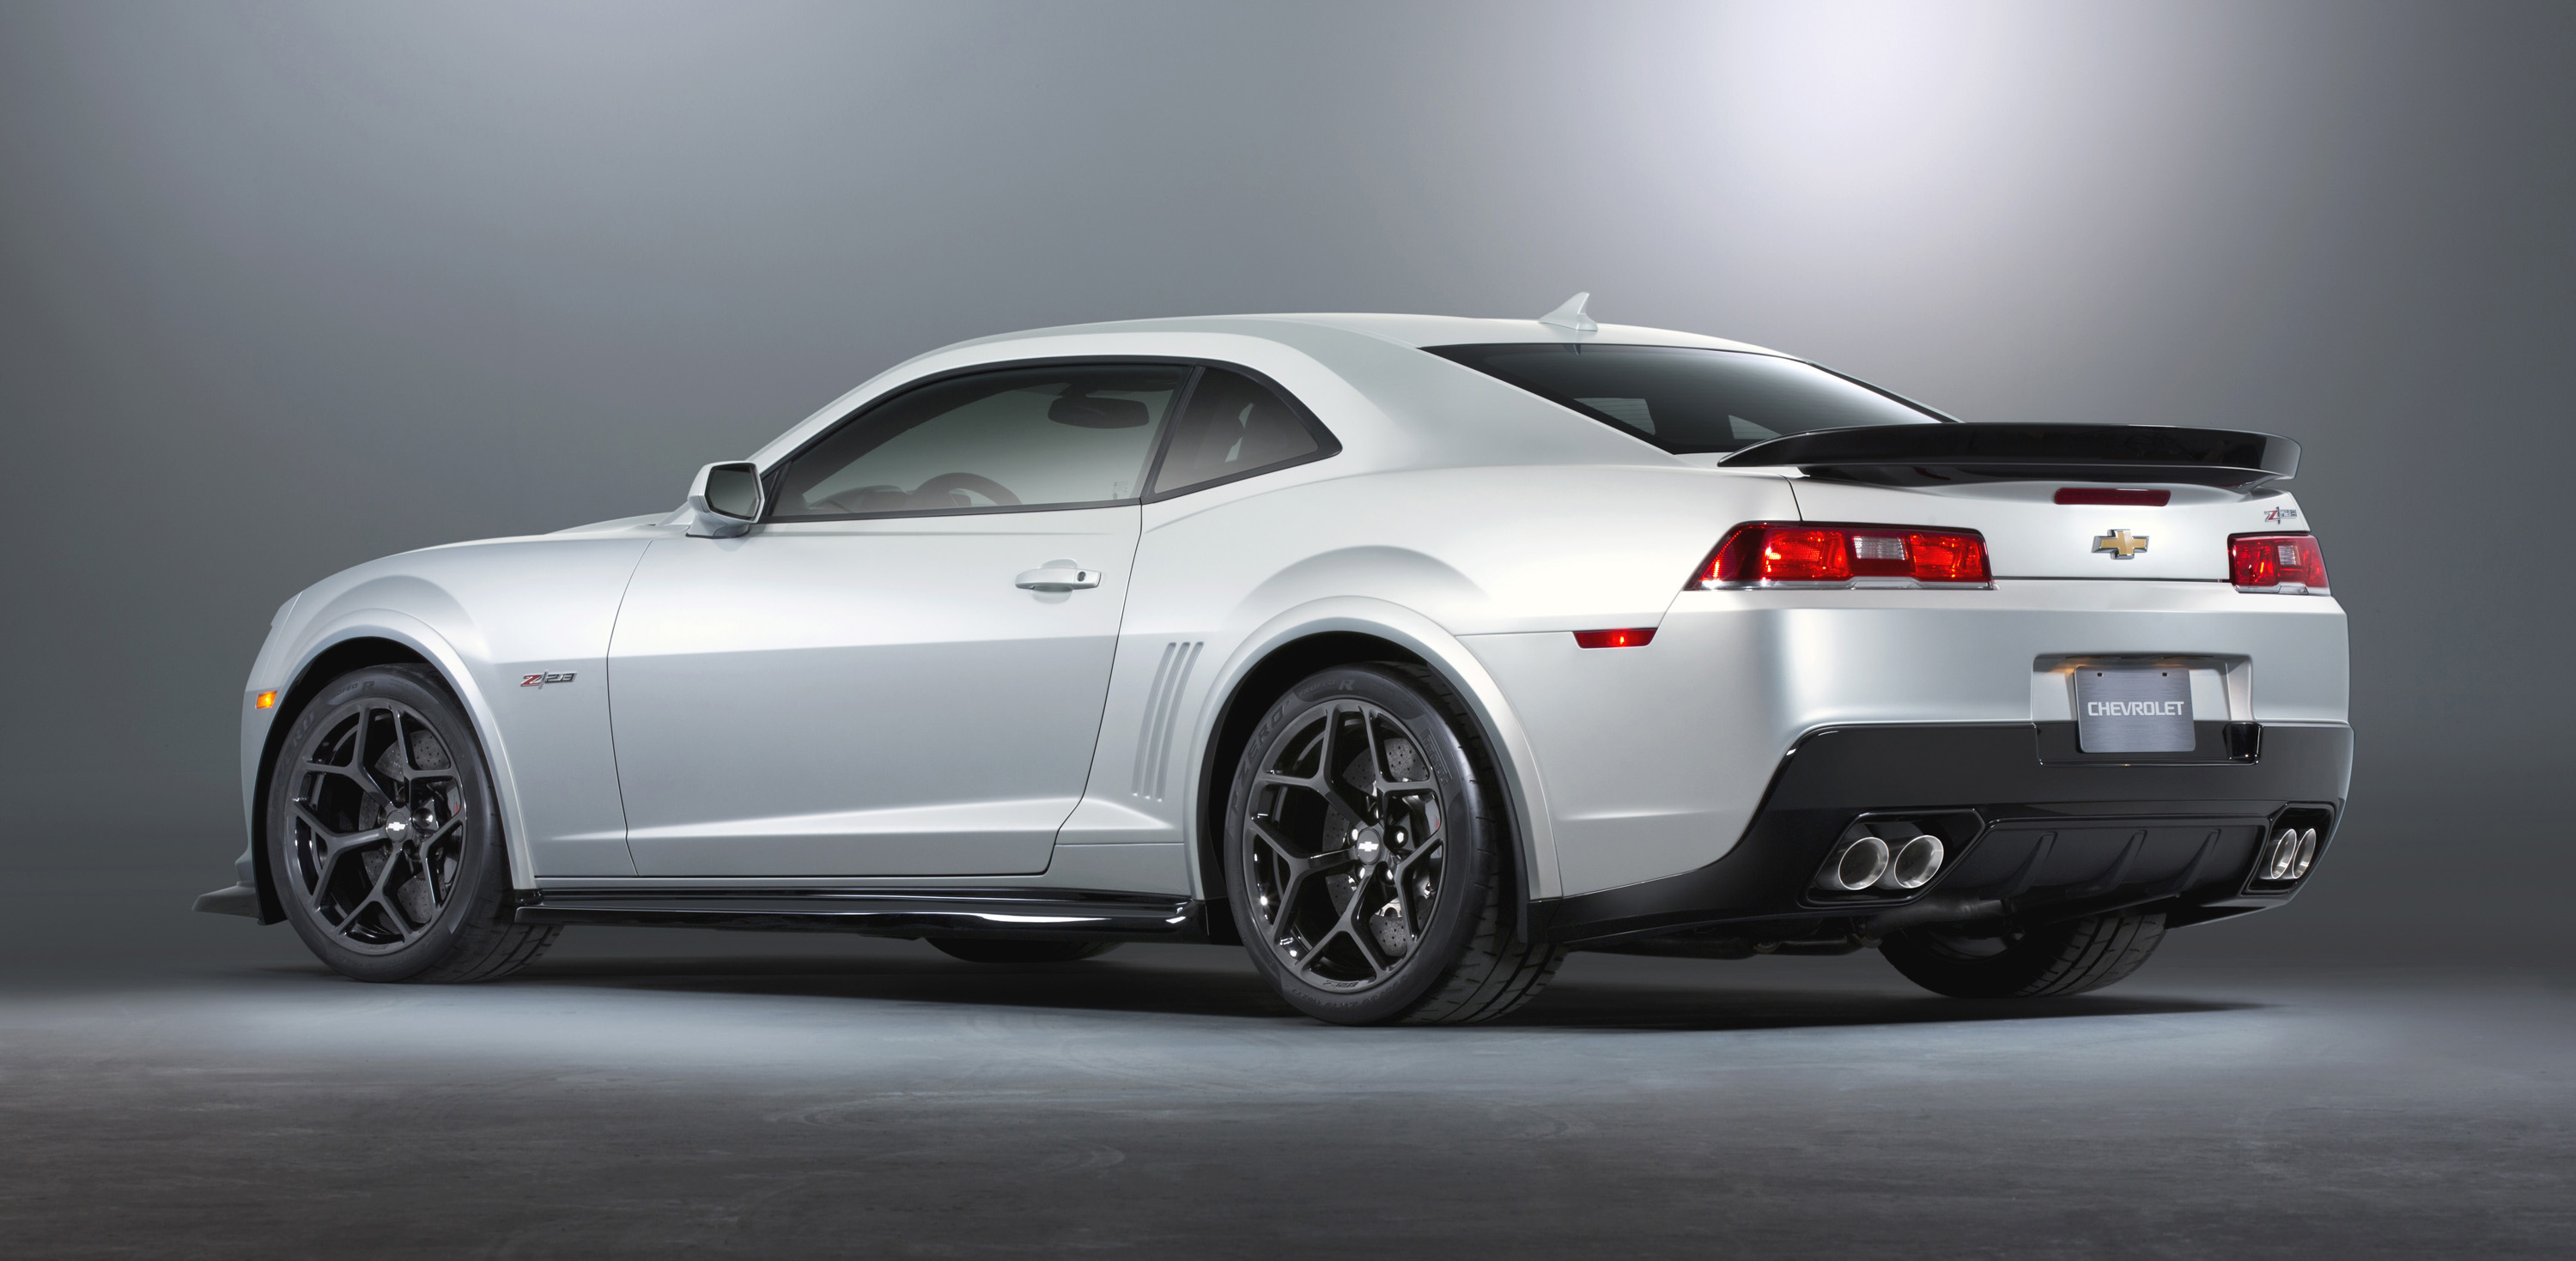 The 2014 Chevrolet Camaro Z28 is the most track capable, factory built